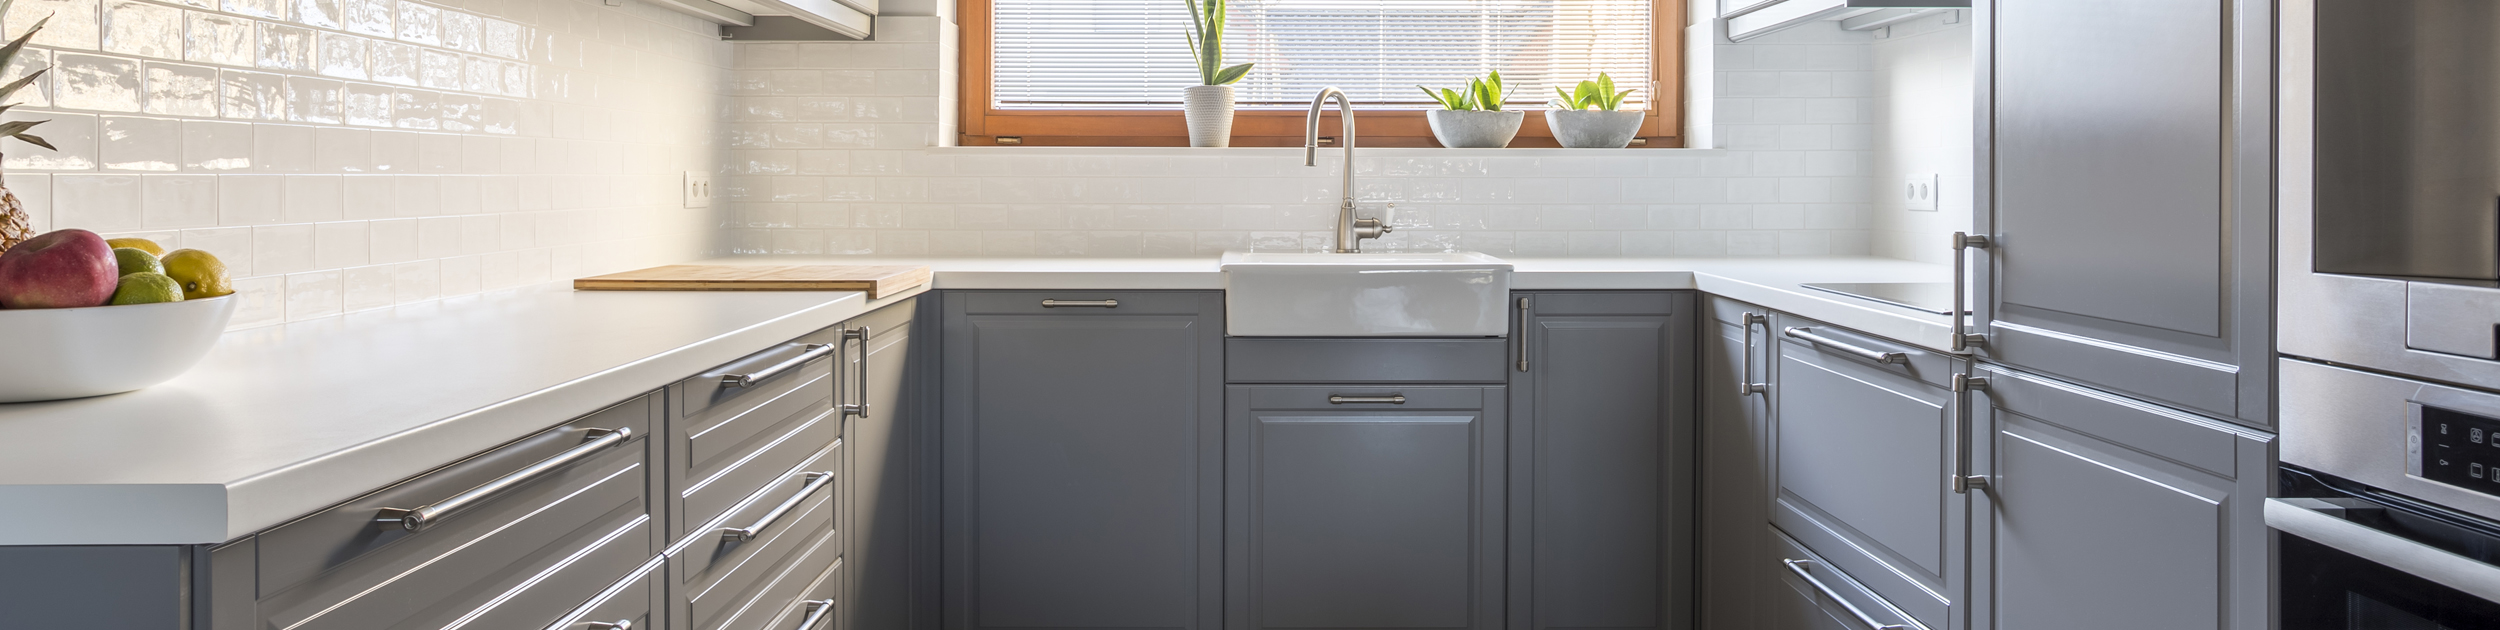 spring image - modern kitchen with gray cabinets, white counters, fruit bowl on counter and plants on the window over the sink